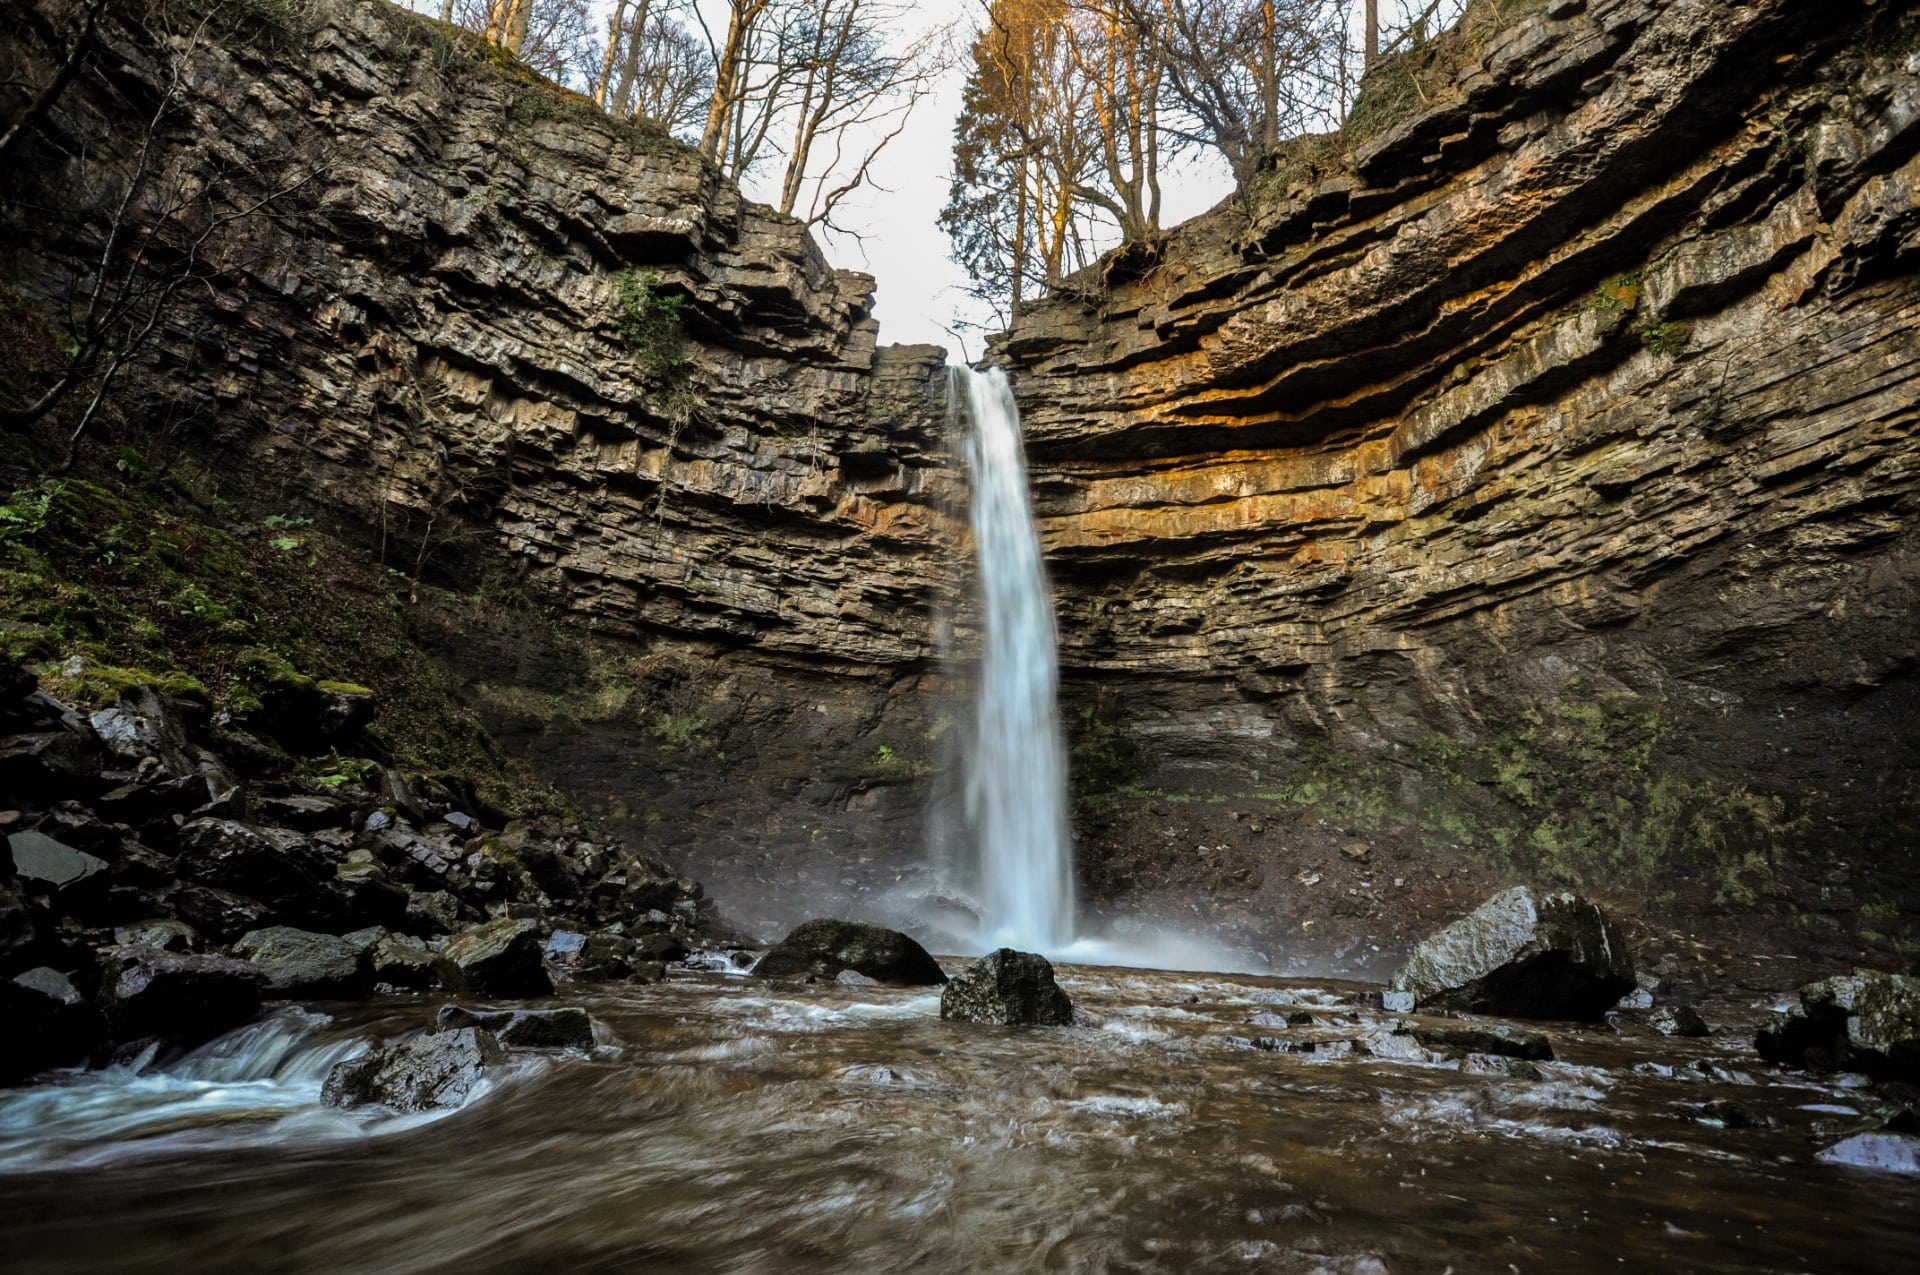 hardraw-force-waterfall-going-into-water